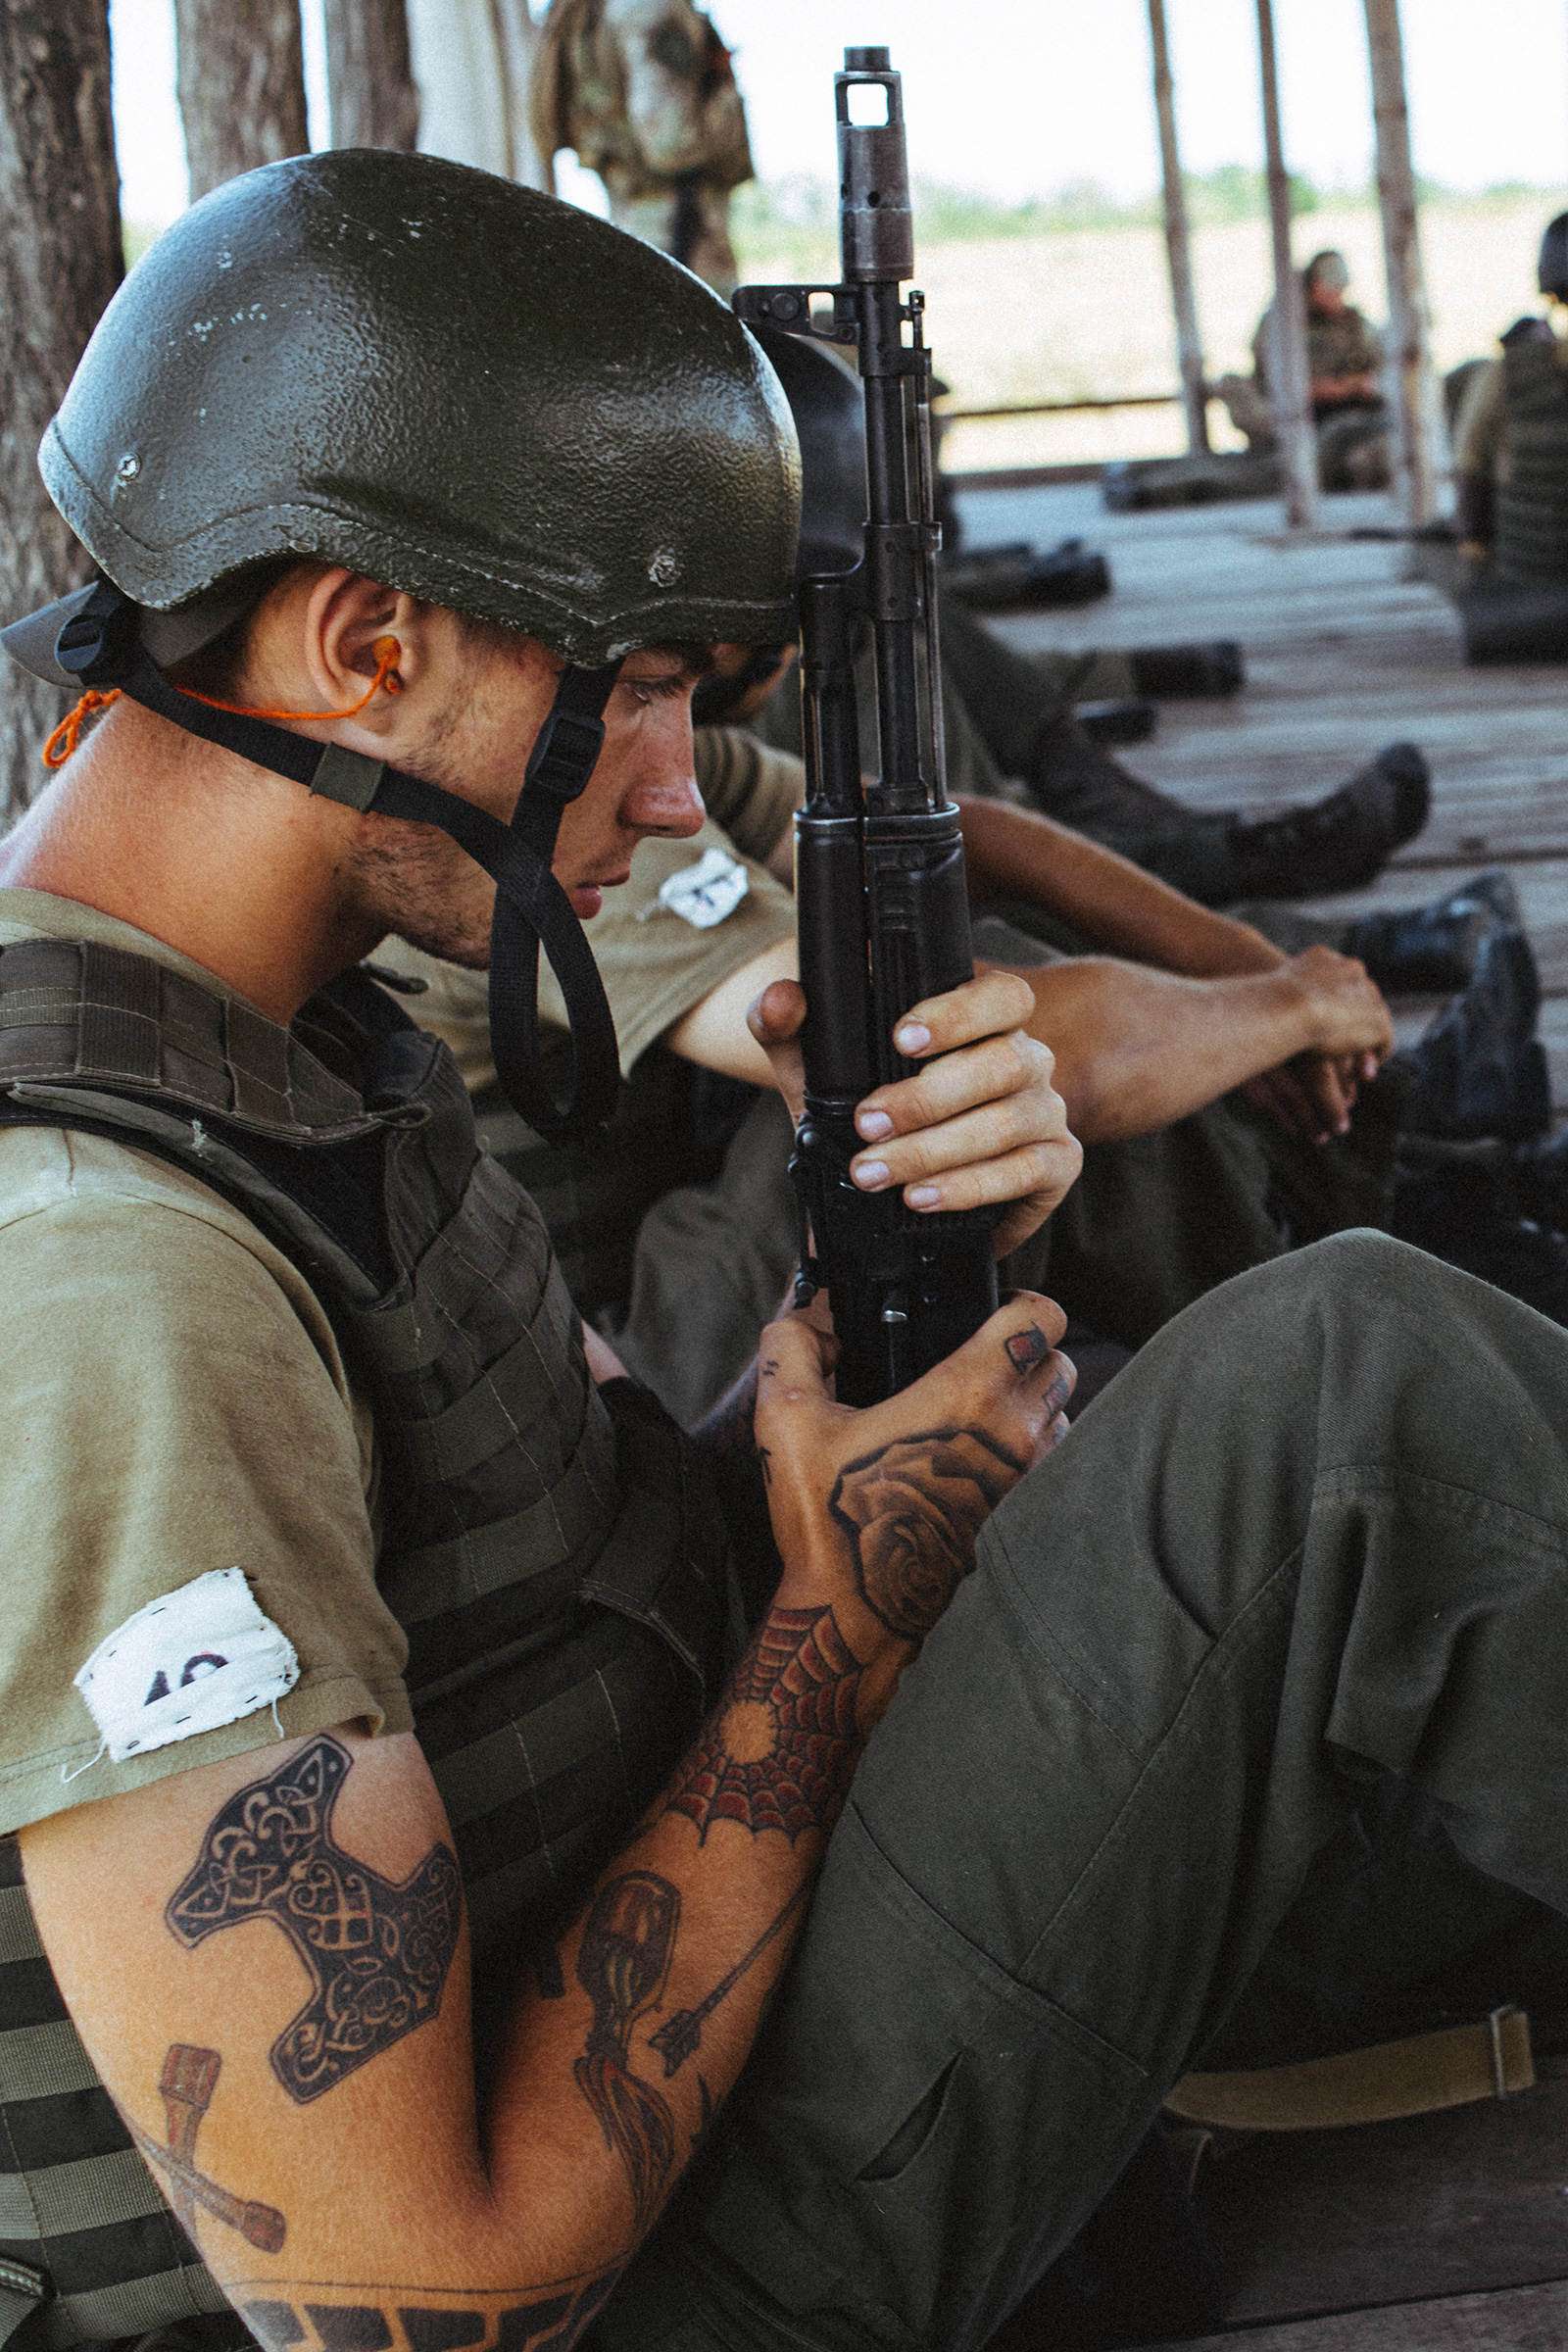 A young Azov recruit holds his rifle during basic training. His tattoos feature symbols often used by right-wing radicals around the world, including the Black Sun and Thor's Hammer.